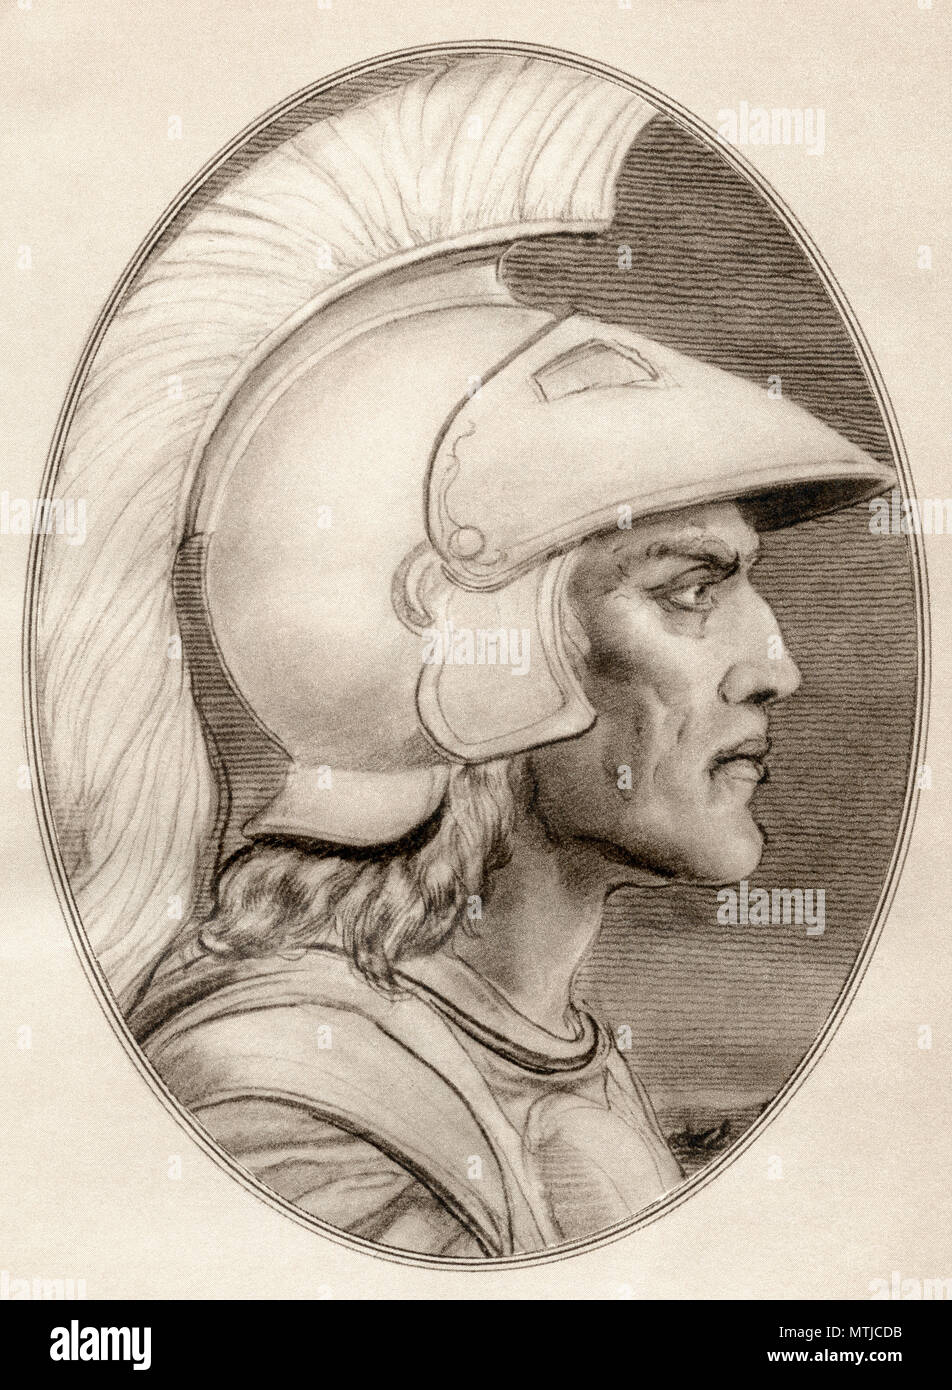 Alexander III of Macedon,  356 BC – 323 BC, aka Alexander the Great.  King of the ancient Greek kingdom of Macedon and member of the Argead dynasty.  Illustration by Gordon Ross, American artist and illustrator (1873-1946), from Living Biographies of Famous Men. - Stock Image